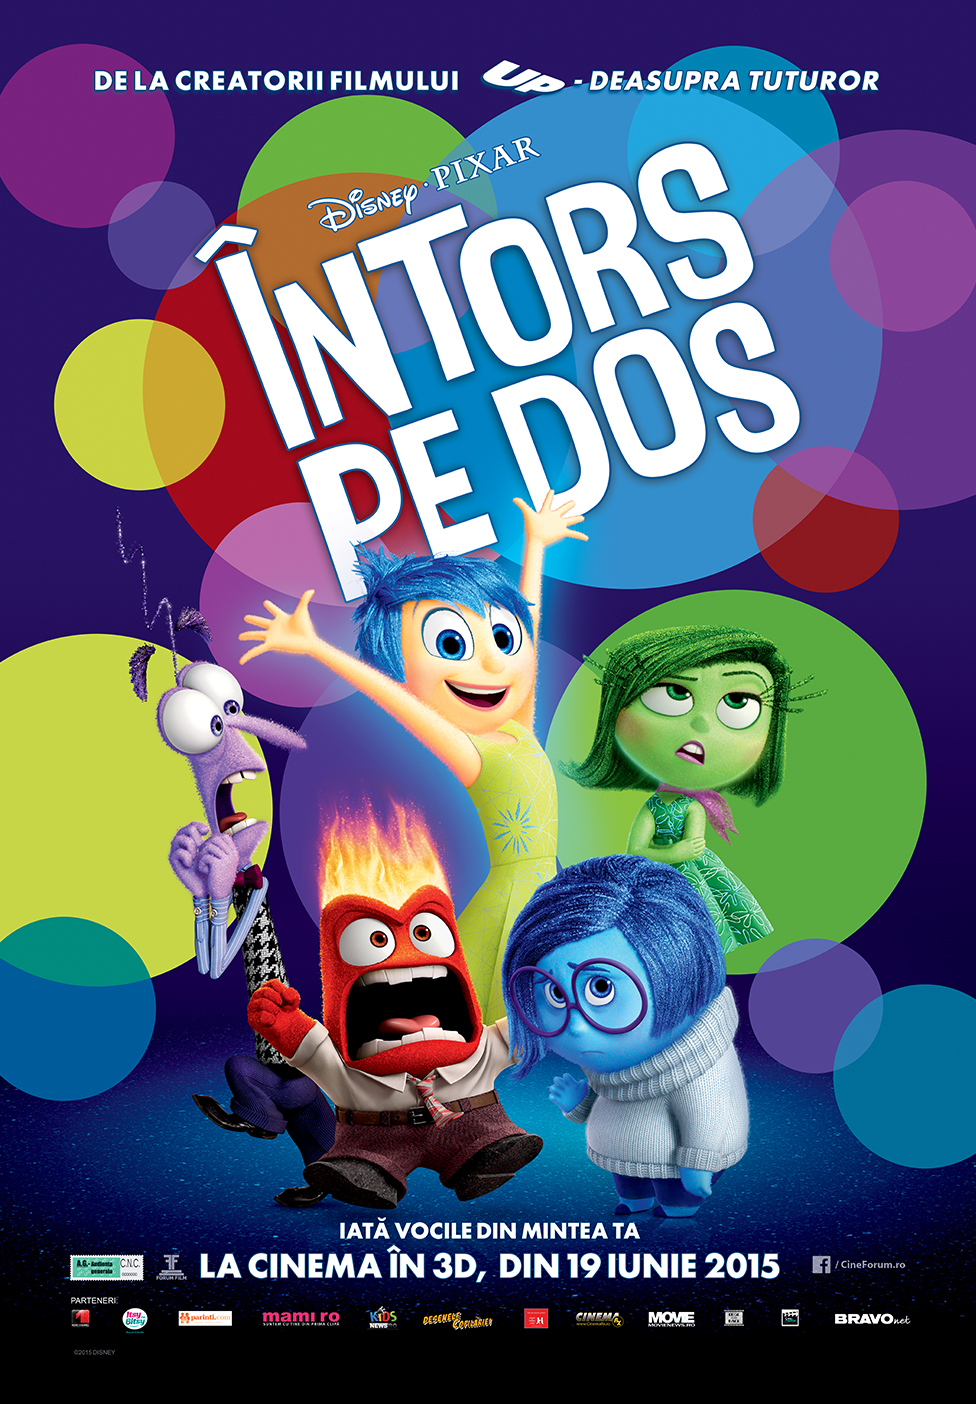 Intors pe dos – 3D Dublat / Inside Out – 3D Dubbed (Premiera)